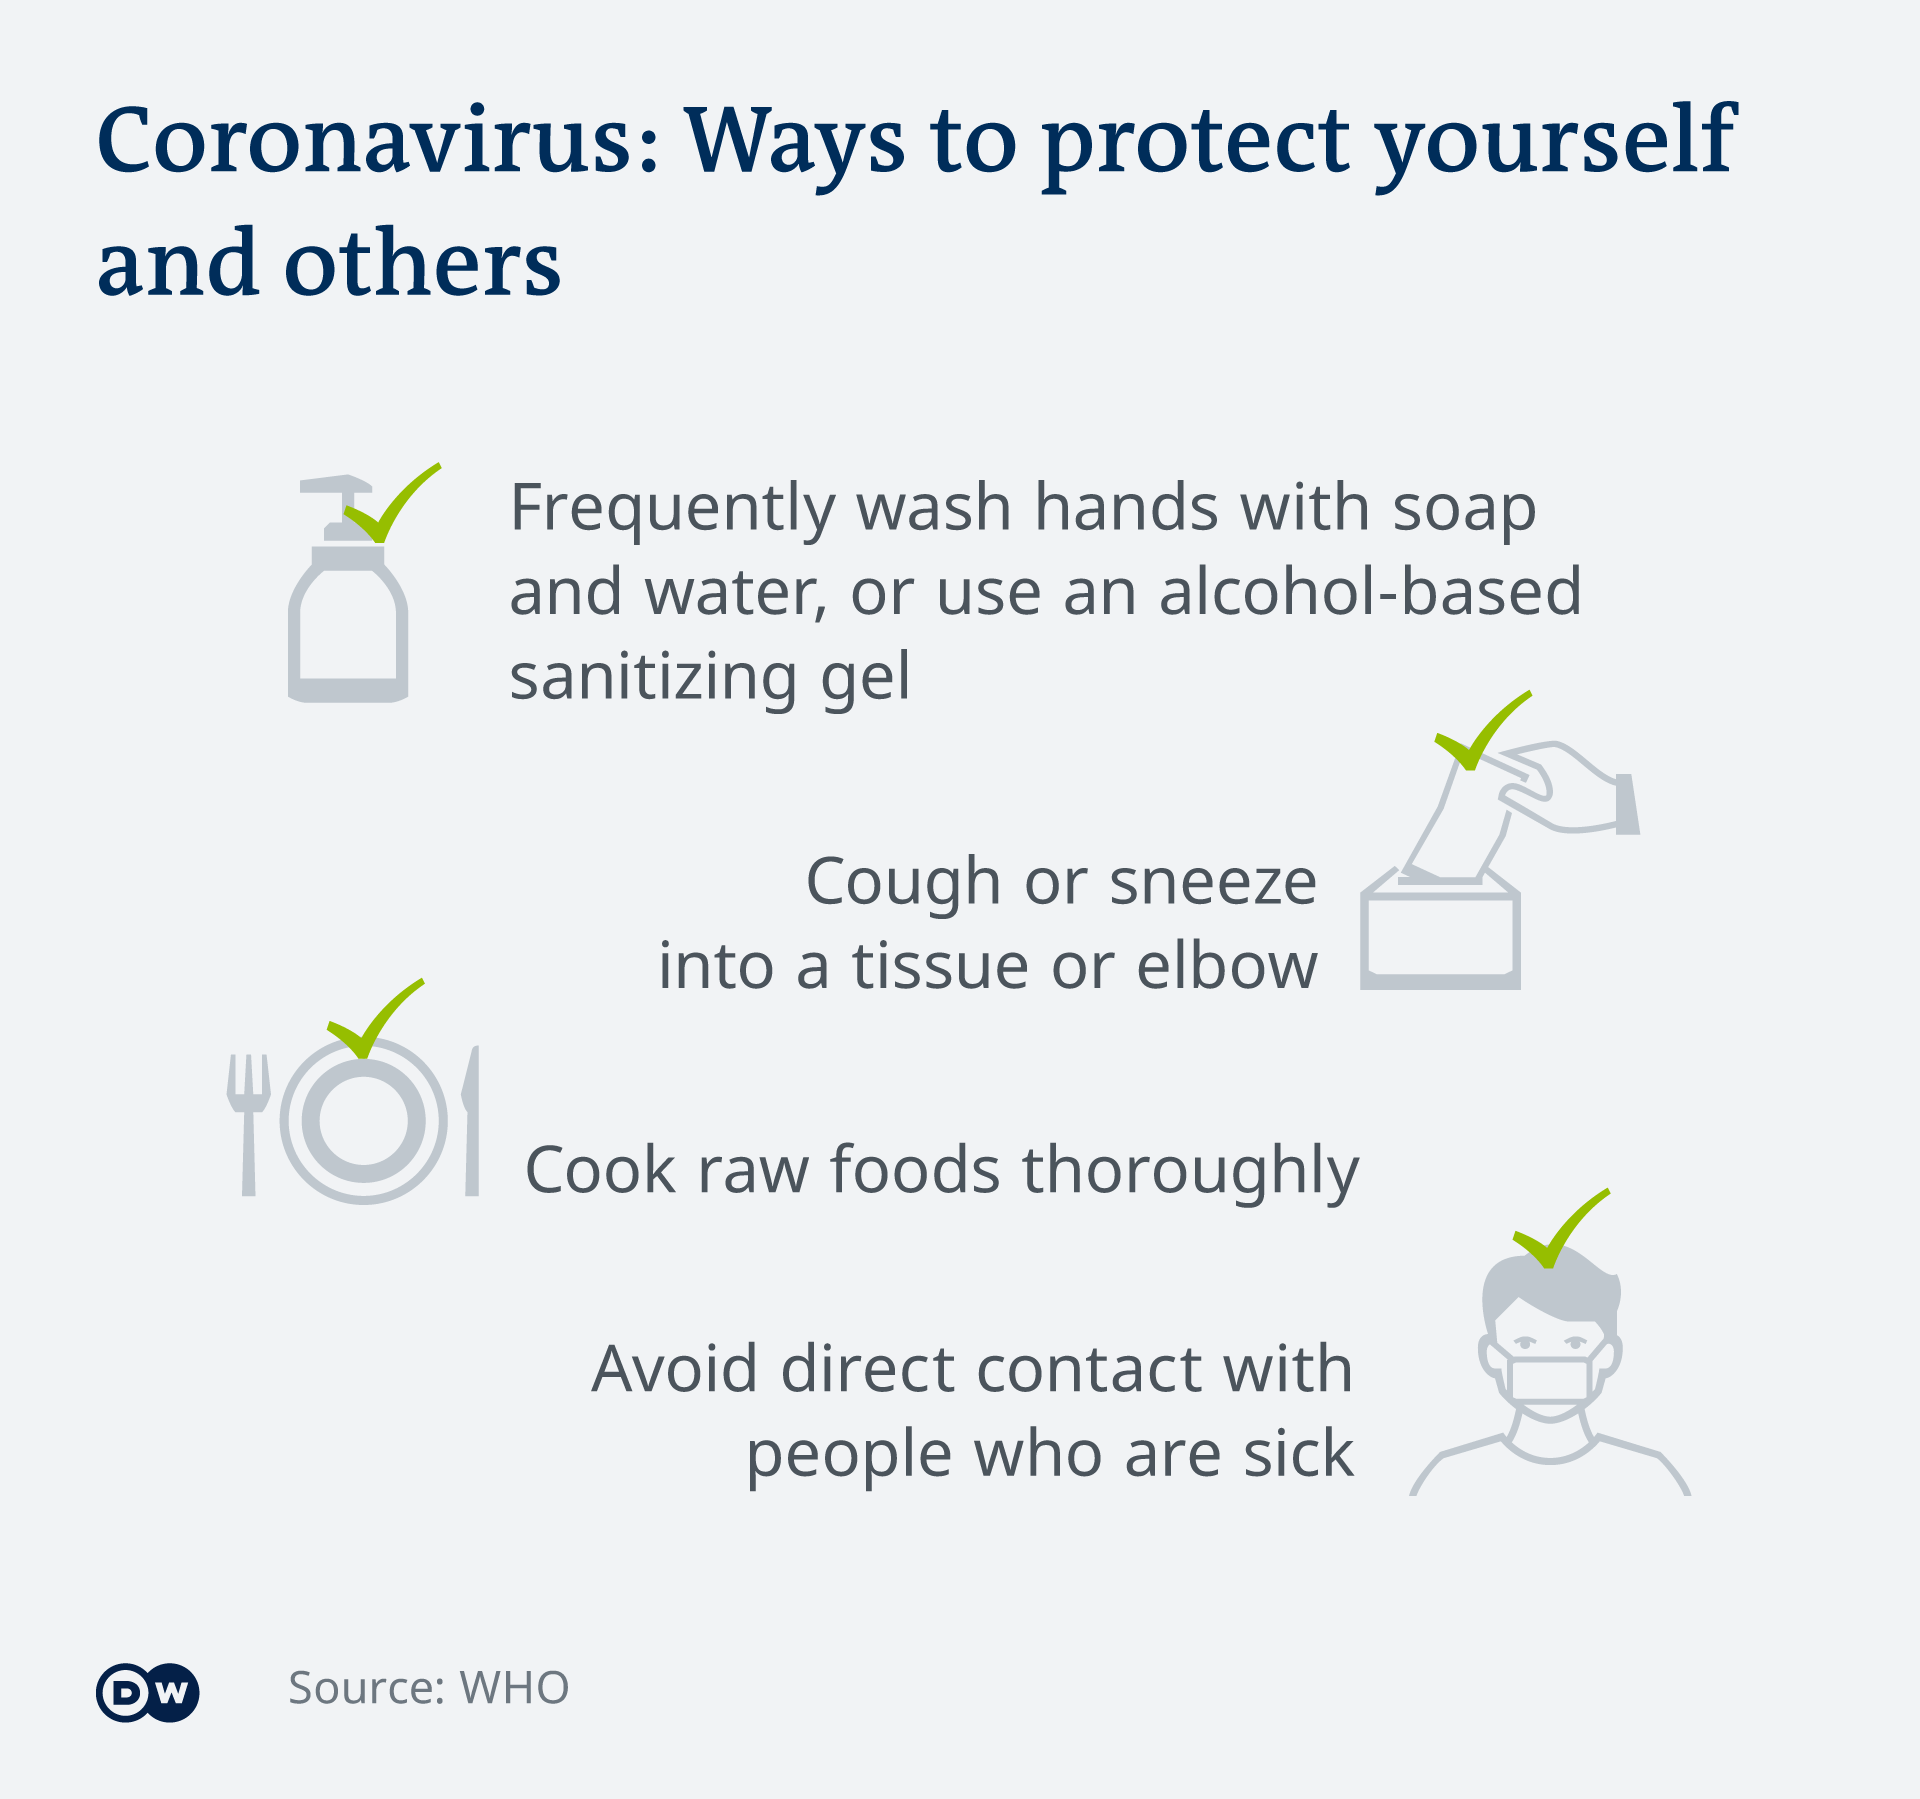 Infographic showing different ways to protect yourself and others against the coronavirus